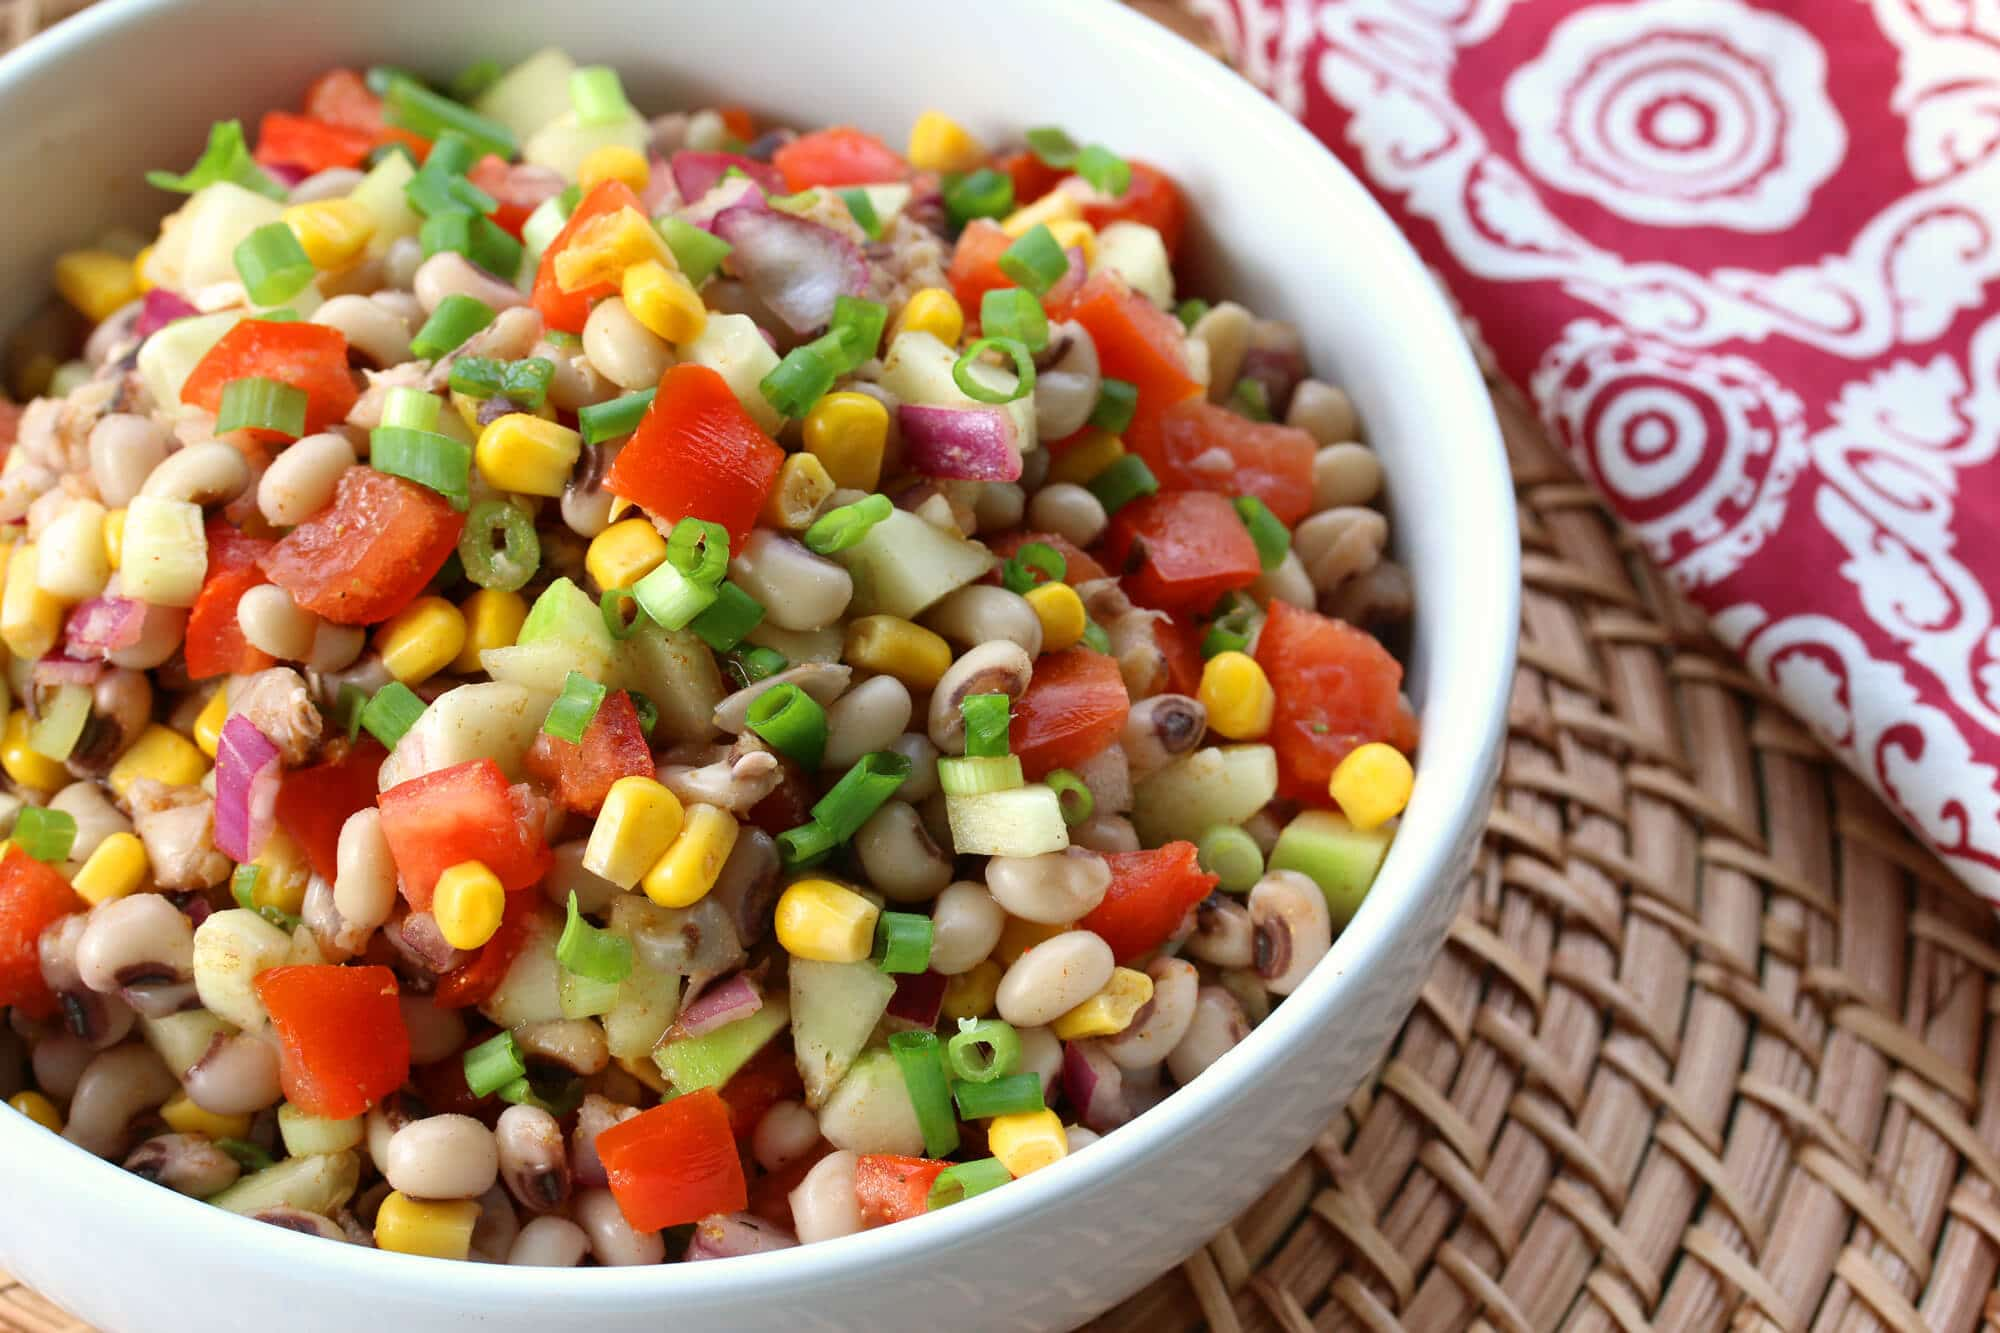 Southern black eyed pea salad or salsa the daring gourmet southern salsa 14 forumfinder Choice Image